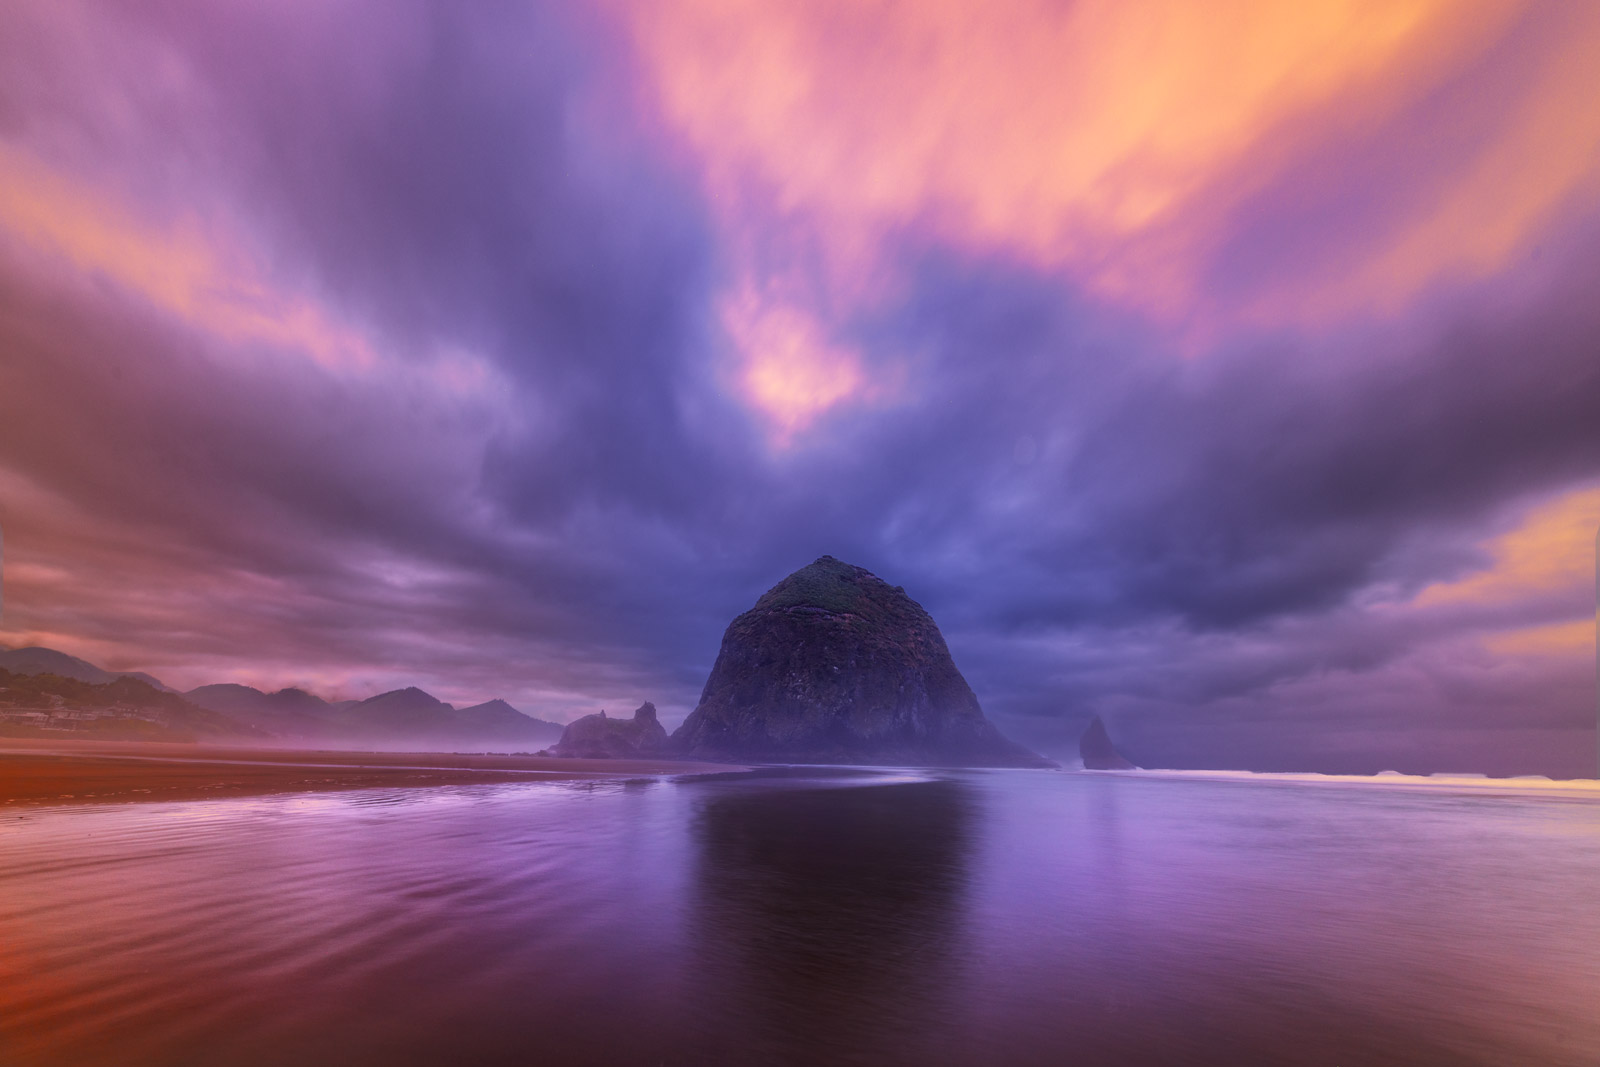 Oregon, Cannon Beach, Haystack Rock, Sunrise, coast, Pacific Northwest, Pacific Coast, photo